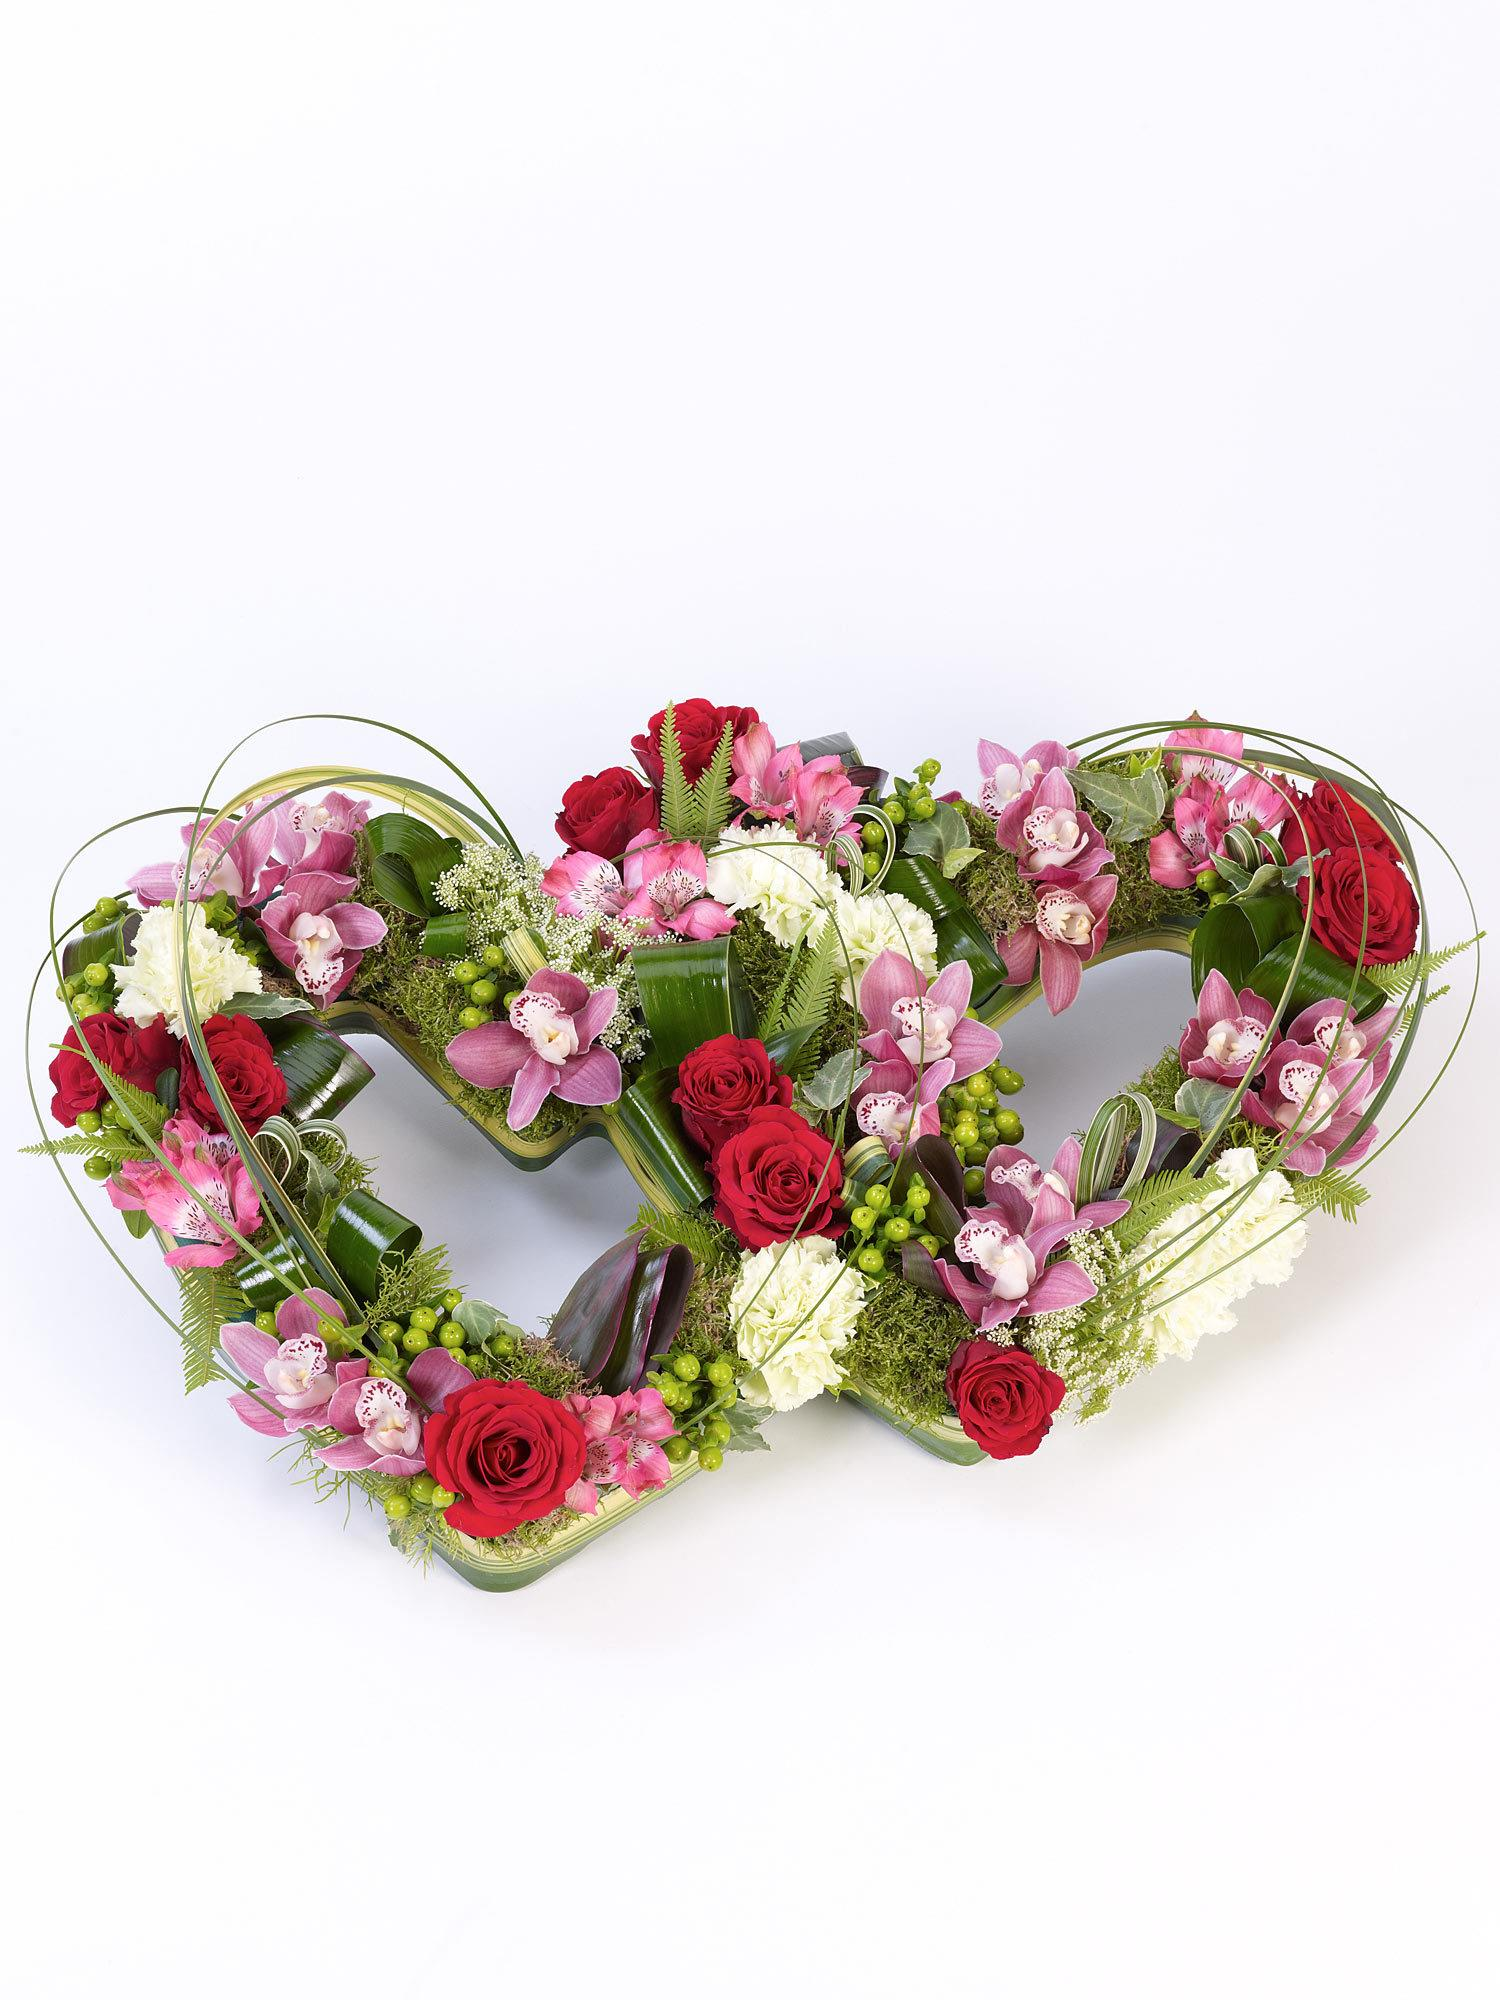 Interflora florist bridgend our flowers porthcawl available for same birthday flowers izmirmasajfo